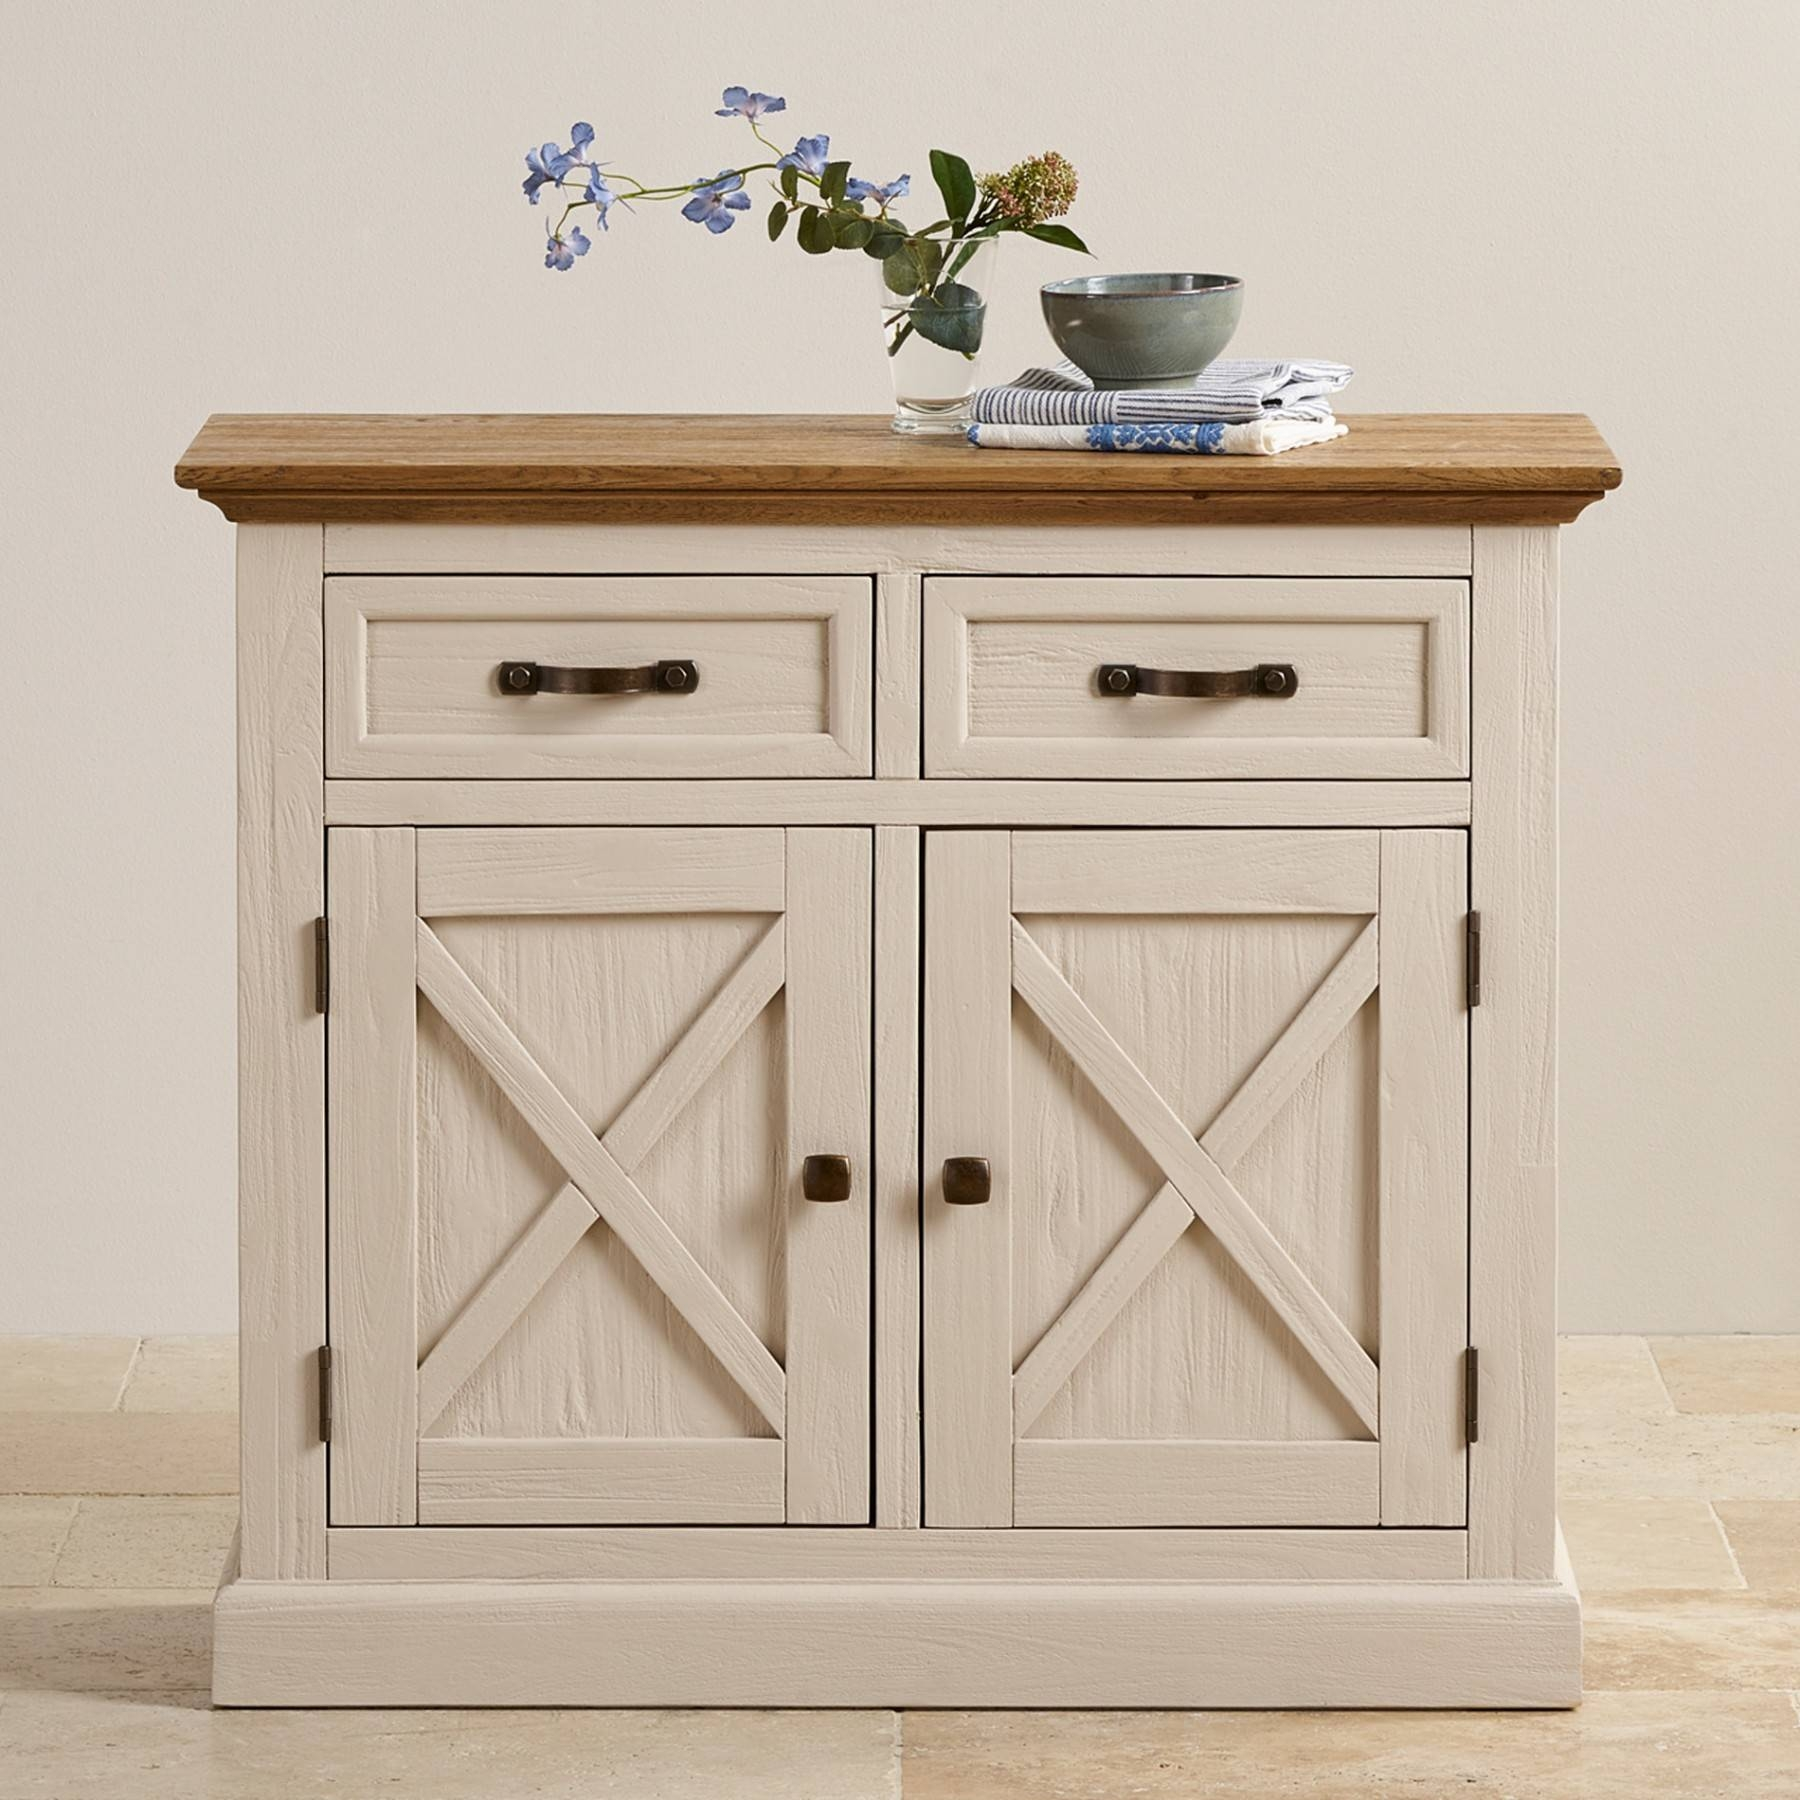 Seychelles Painted And Brushed Solid Oak Small Sideboard Oak Throughout Most Recently Released Solid Oak Small Sideboards (View 15 of 15)